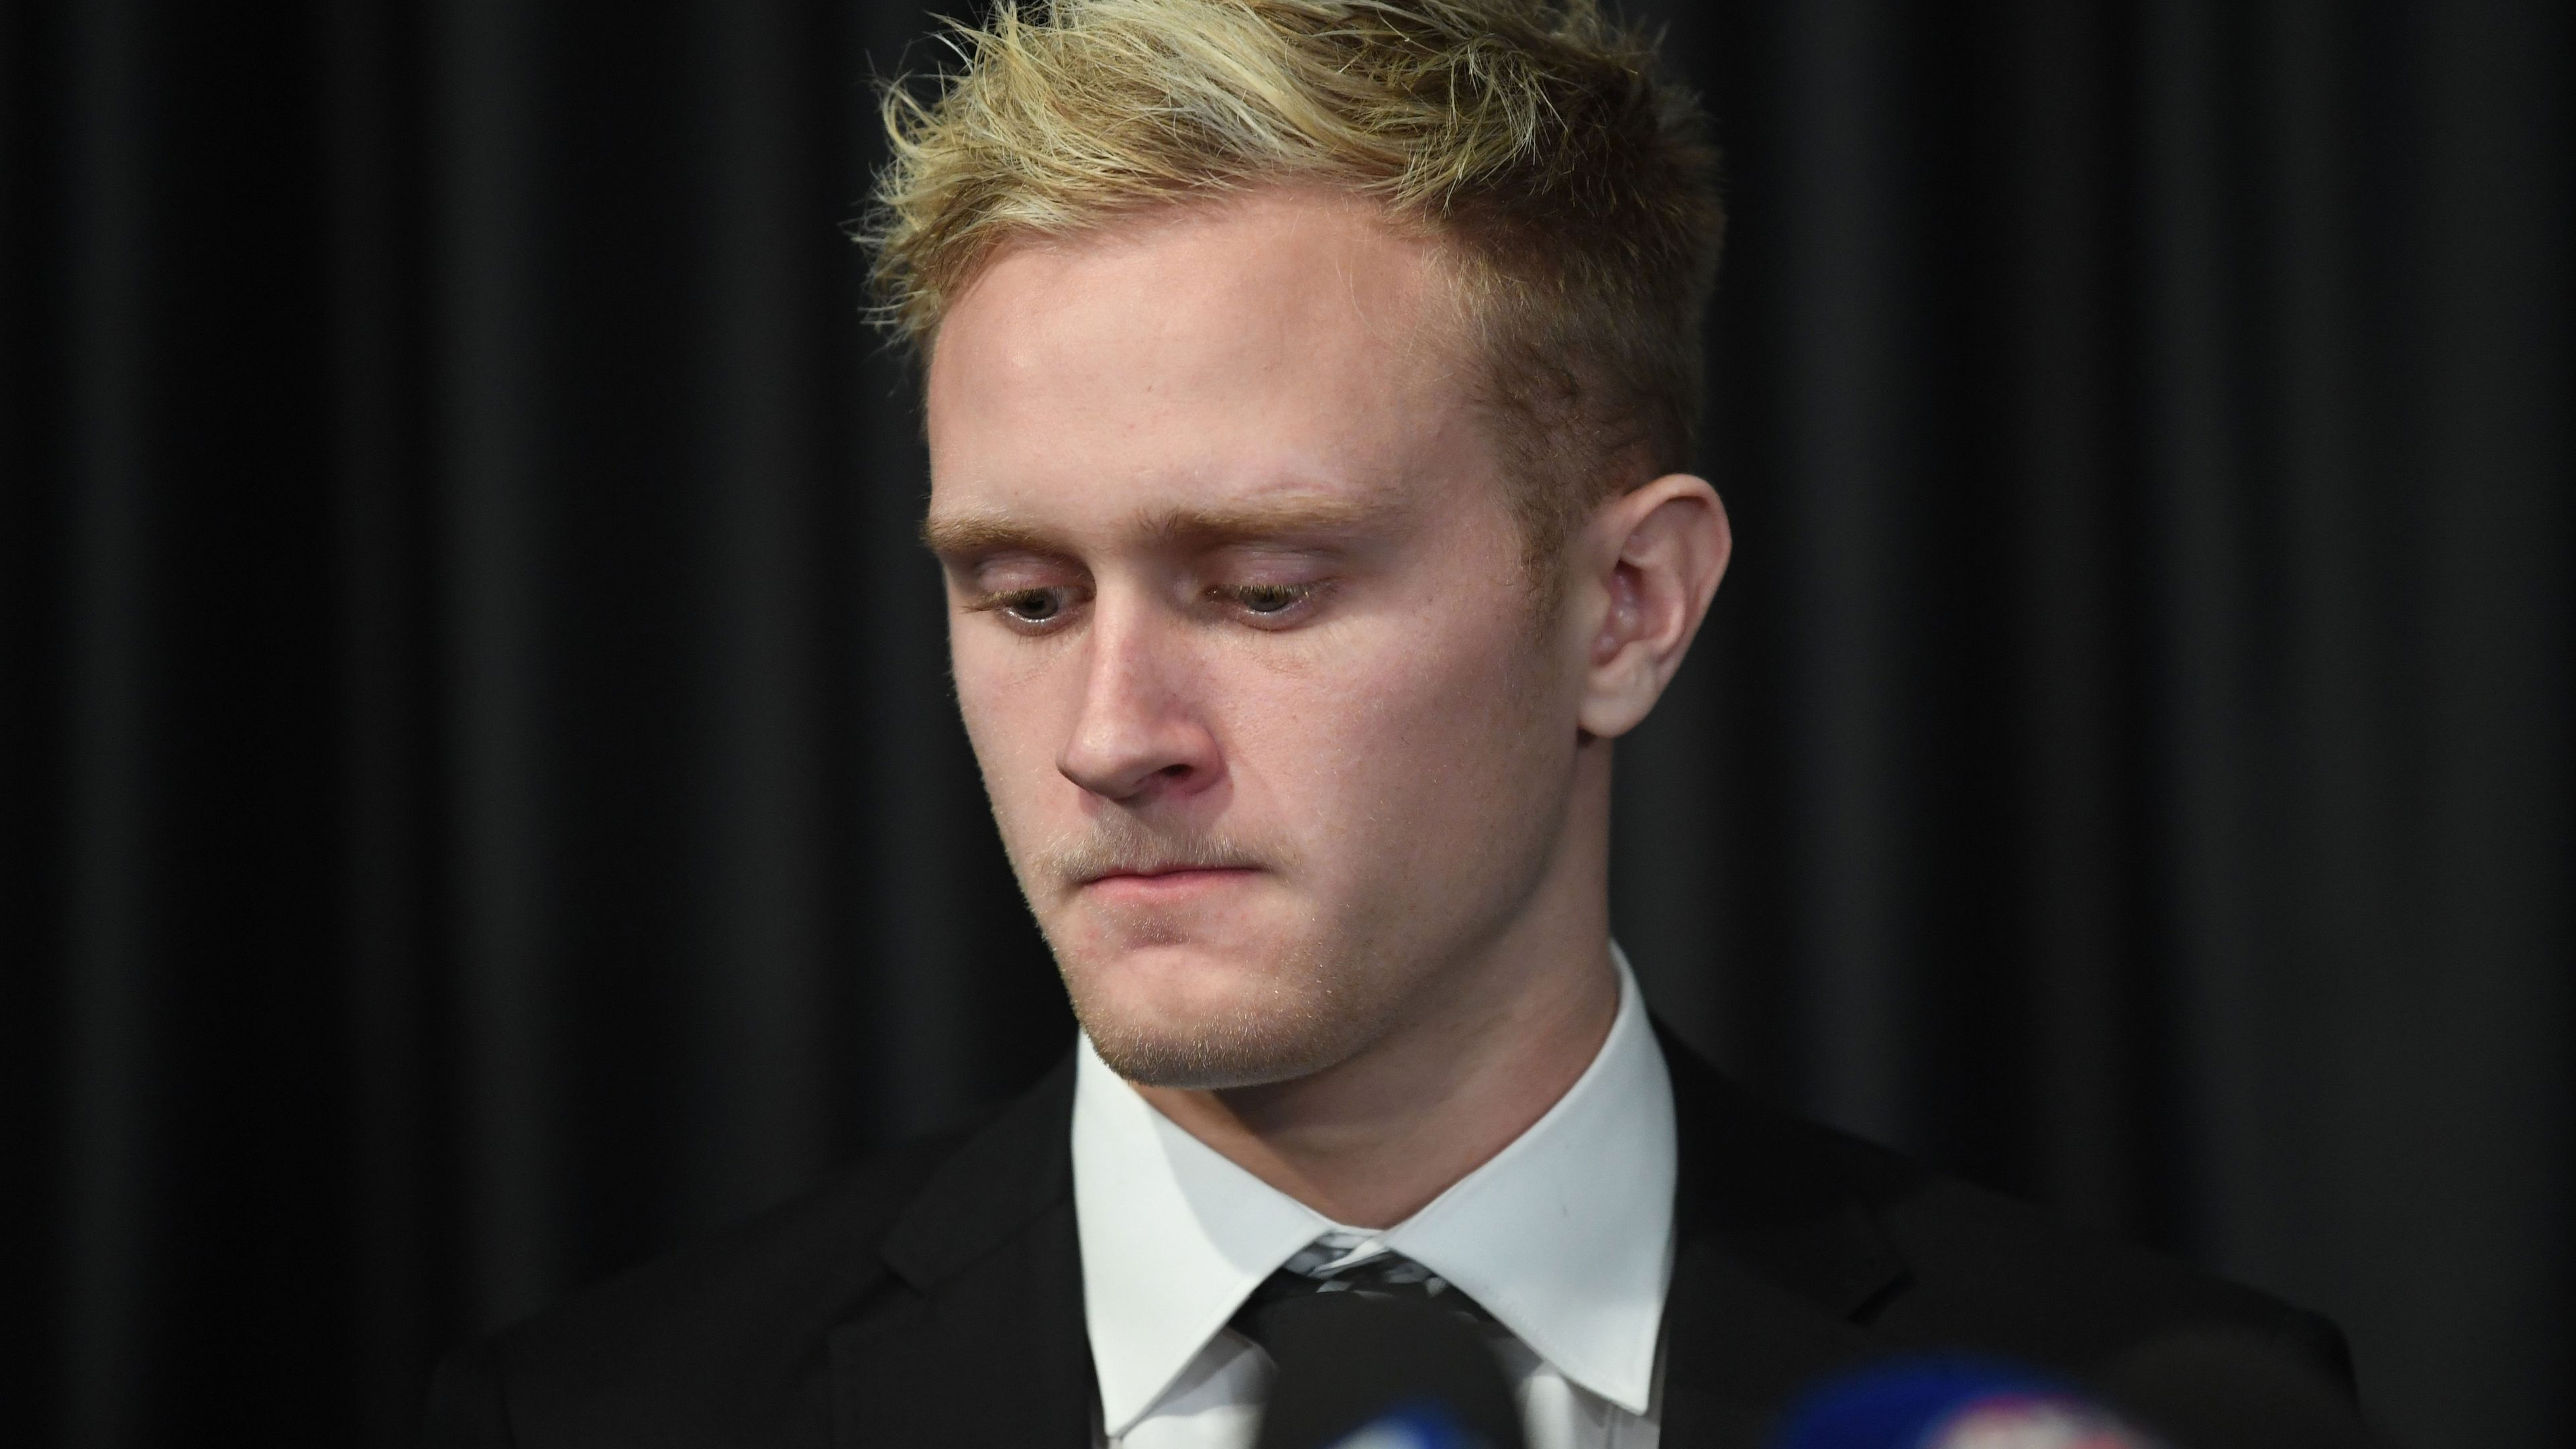 Collingwood's Jaidyn Stephenson banned 22 games, 12 suspended, over betting scandal